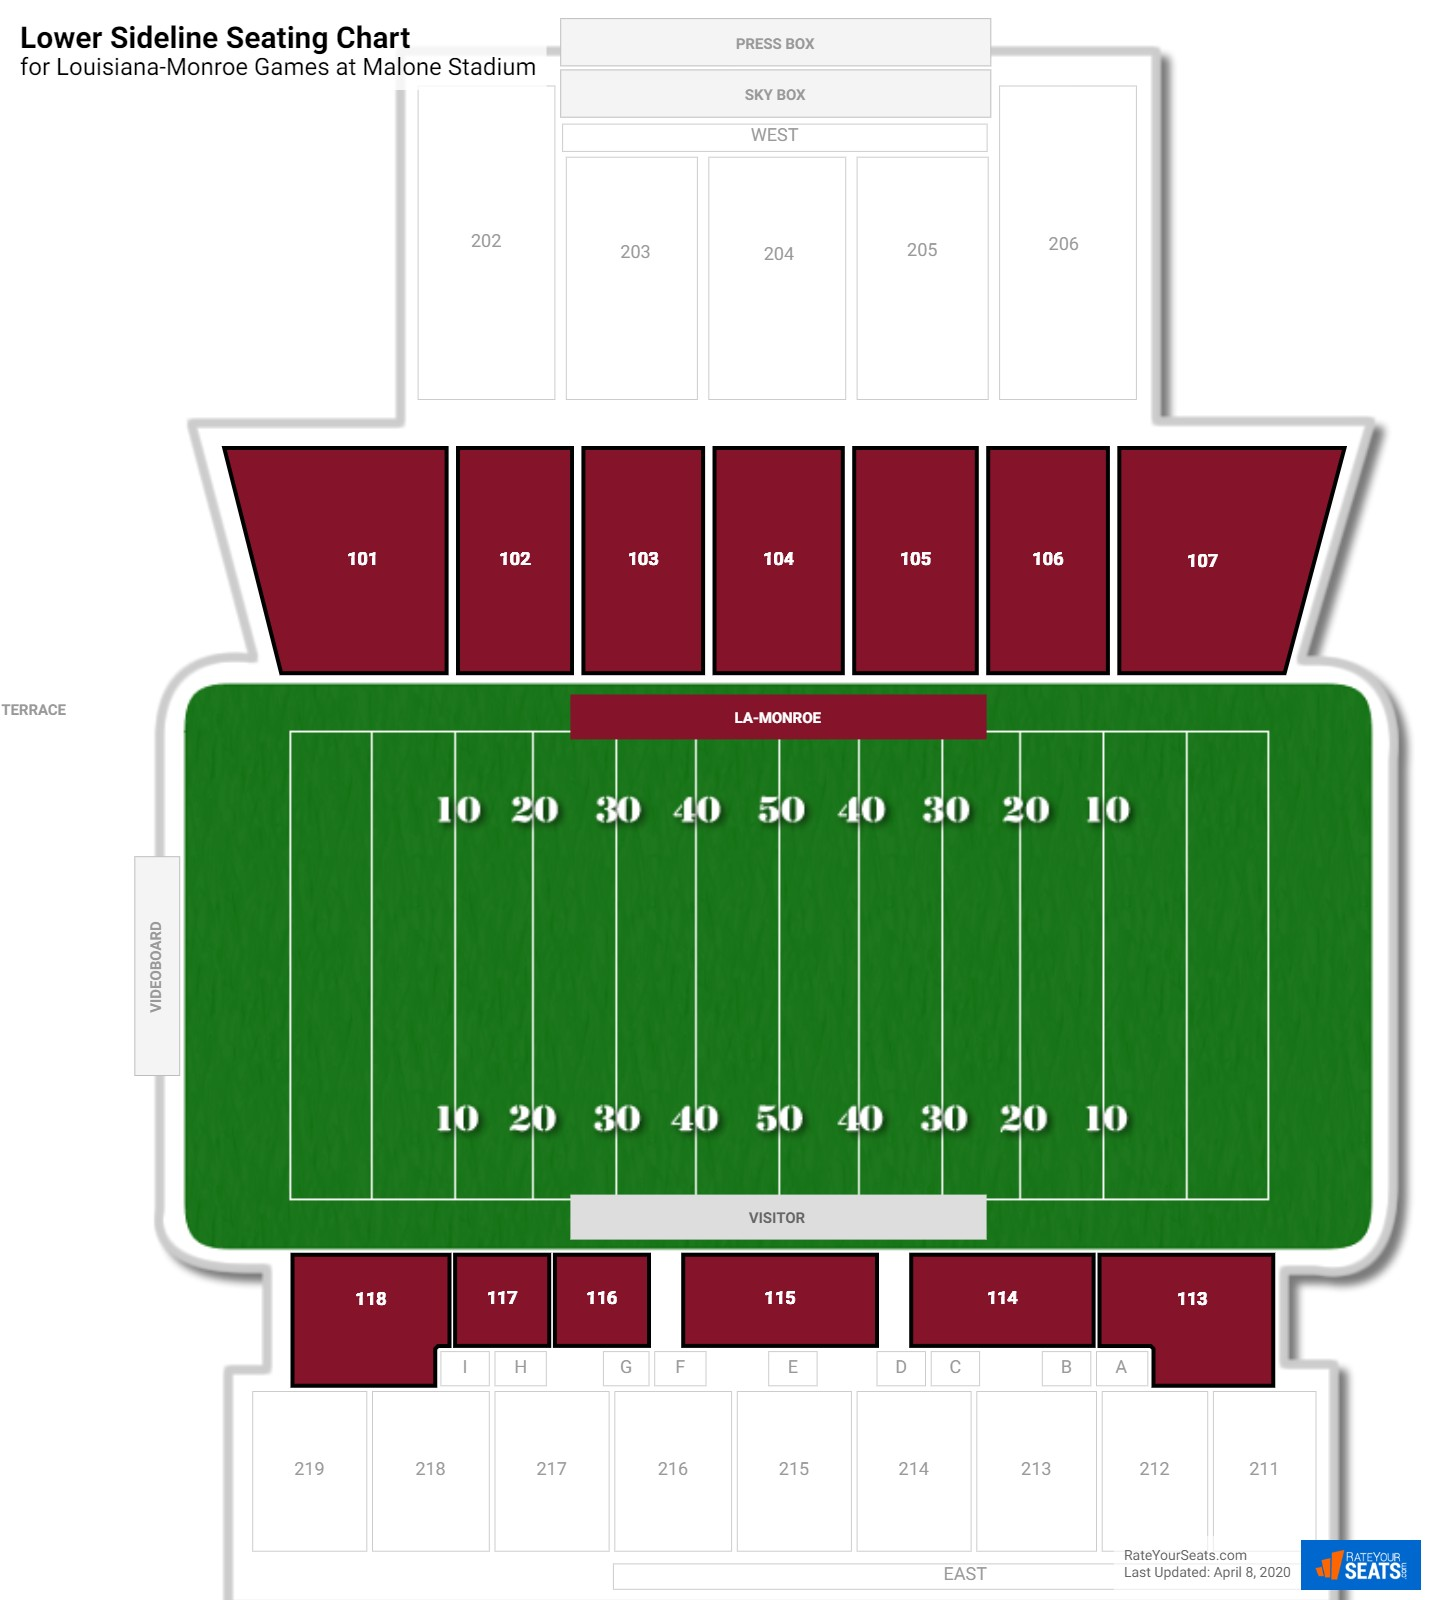 Malone Stadium Lower Sideline seating chart